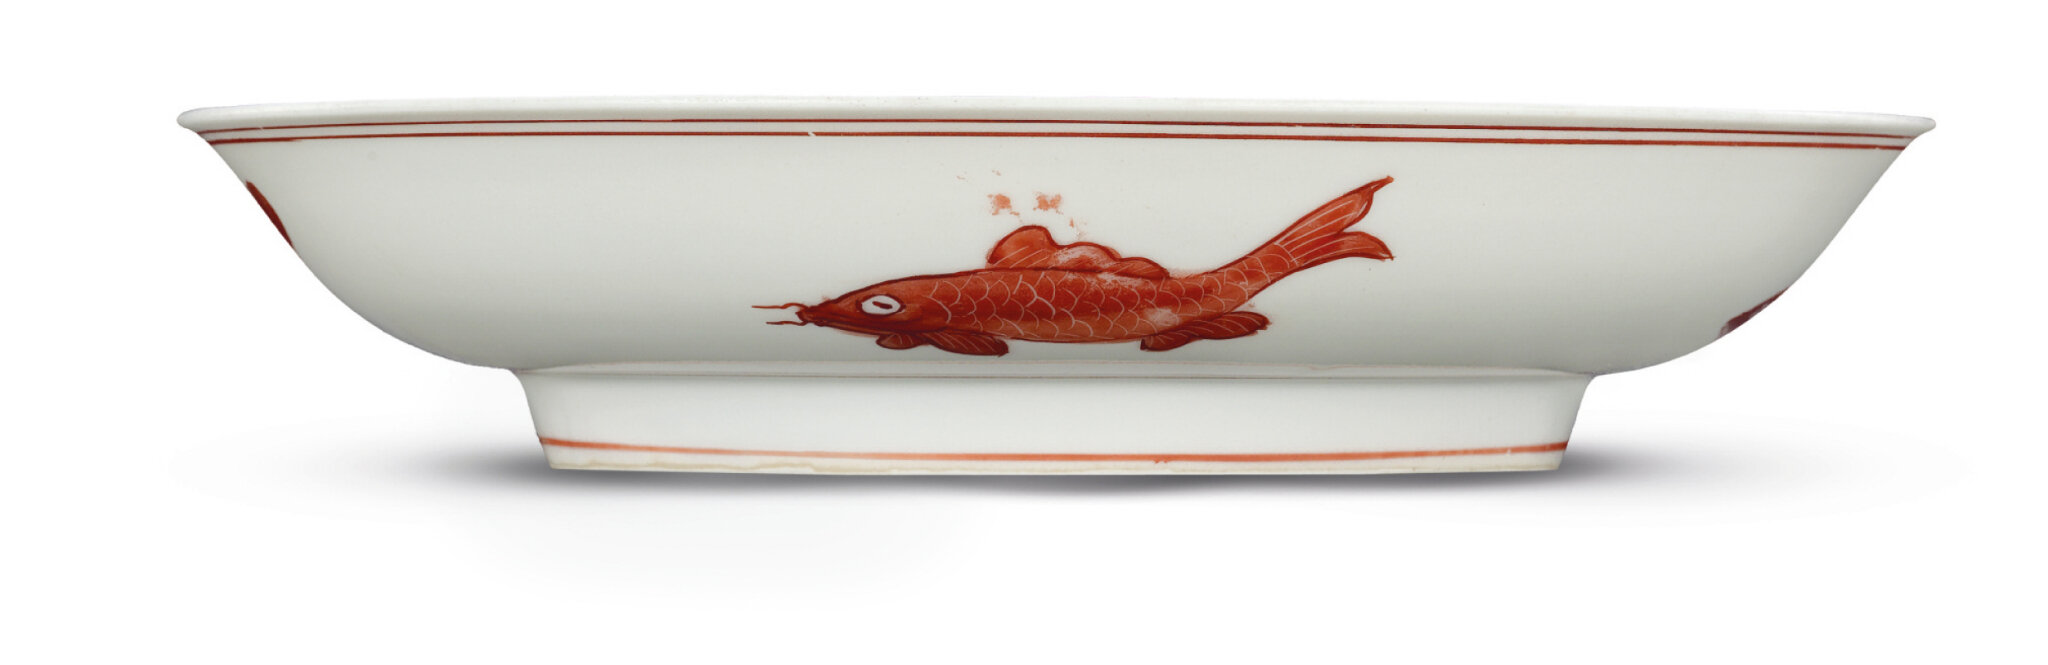 A rare Ming iron-red decorated 'fish' dish, Hongzhi-Zhengde period (1488-1521)